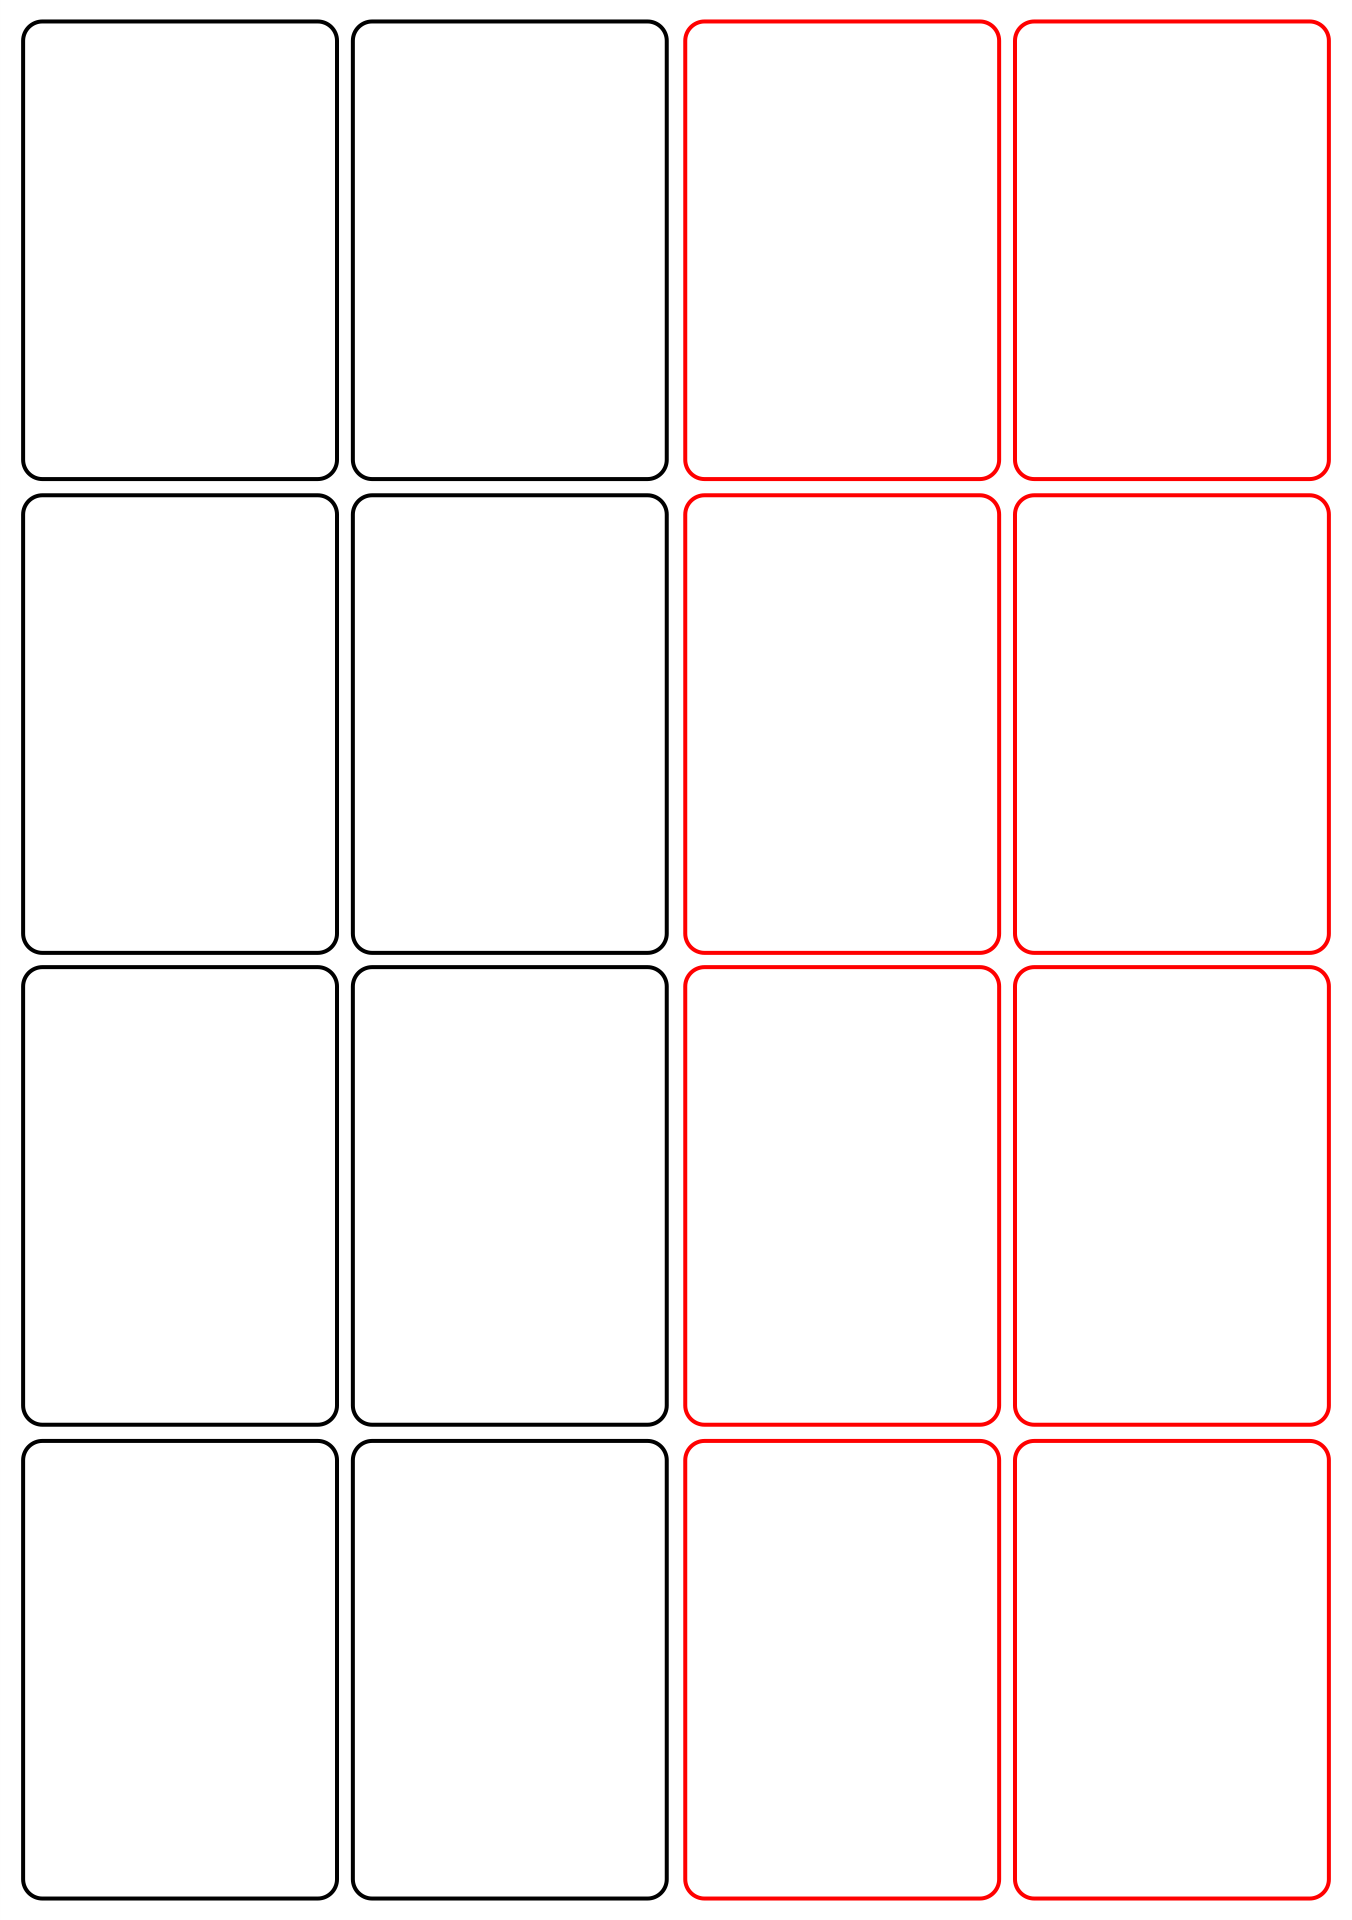 8 best images of blank playing card printable template for for Blank scorecard template